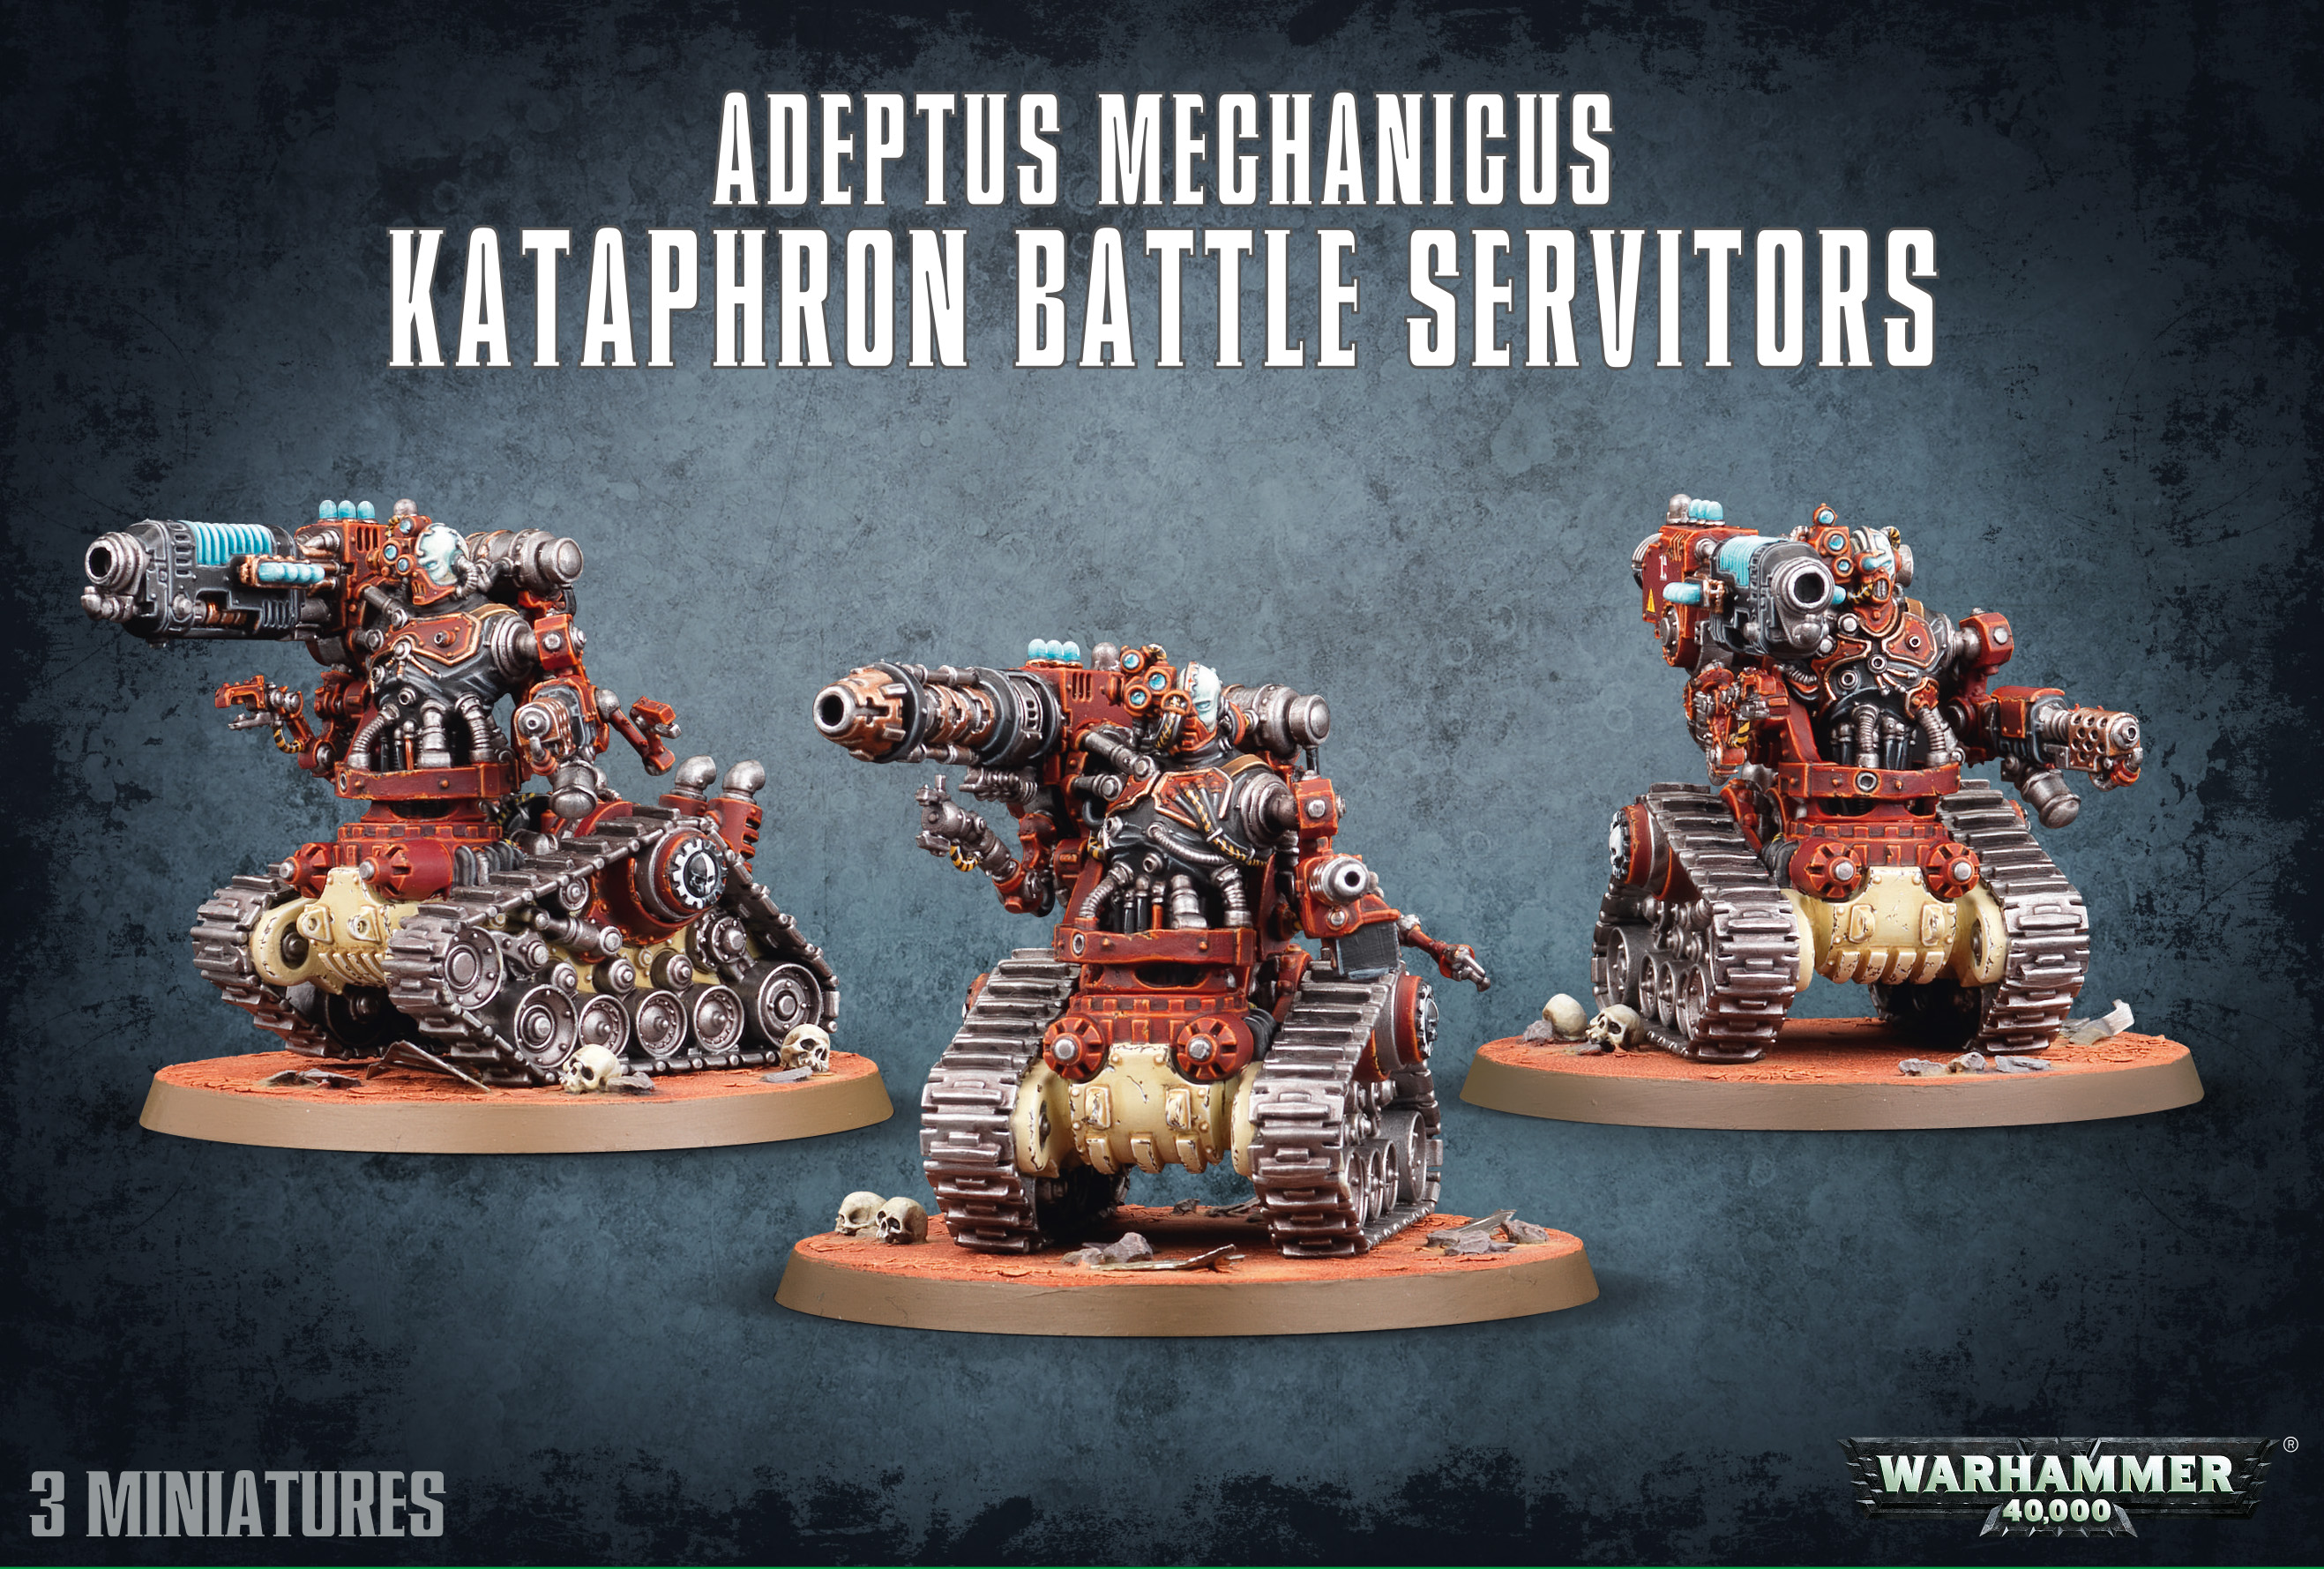 Warhammer 40,000: Adeptus Mechanicus: Kataphron Battle Servitors/ Destroyers